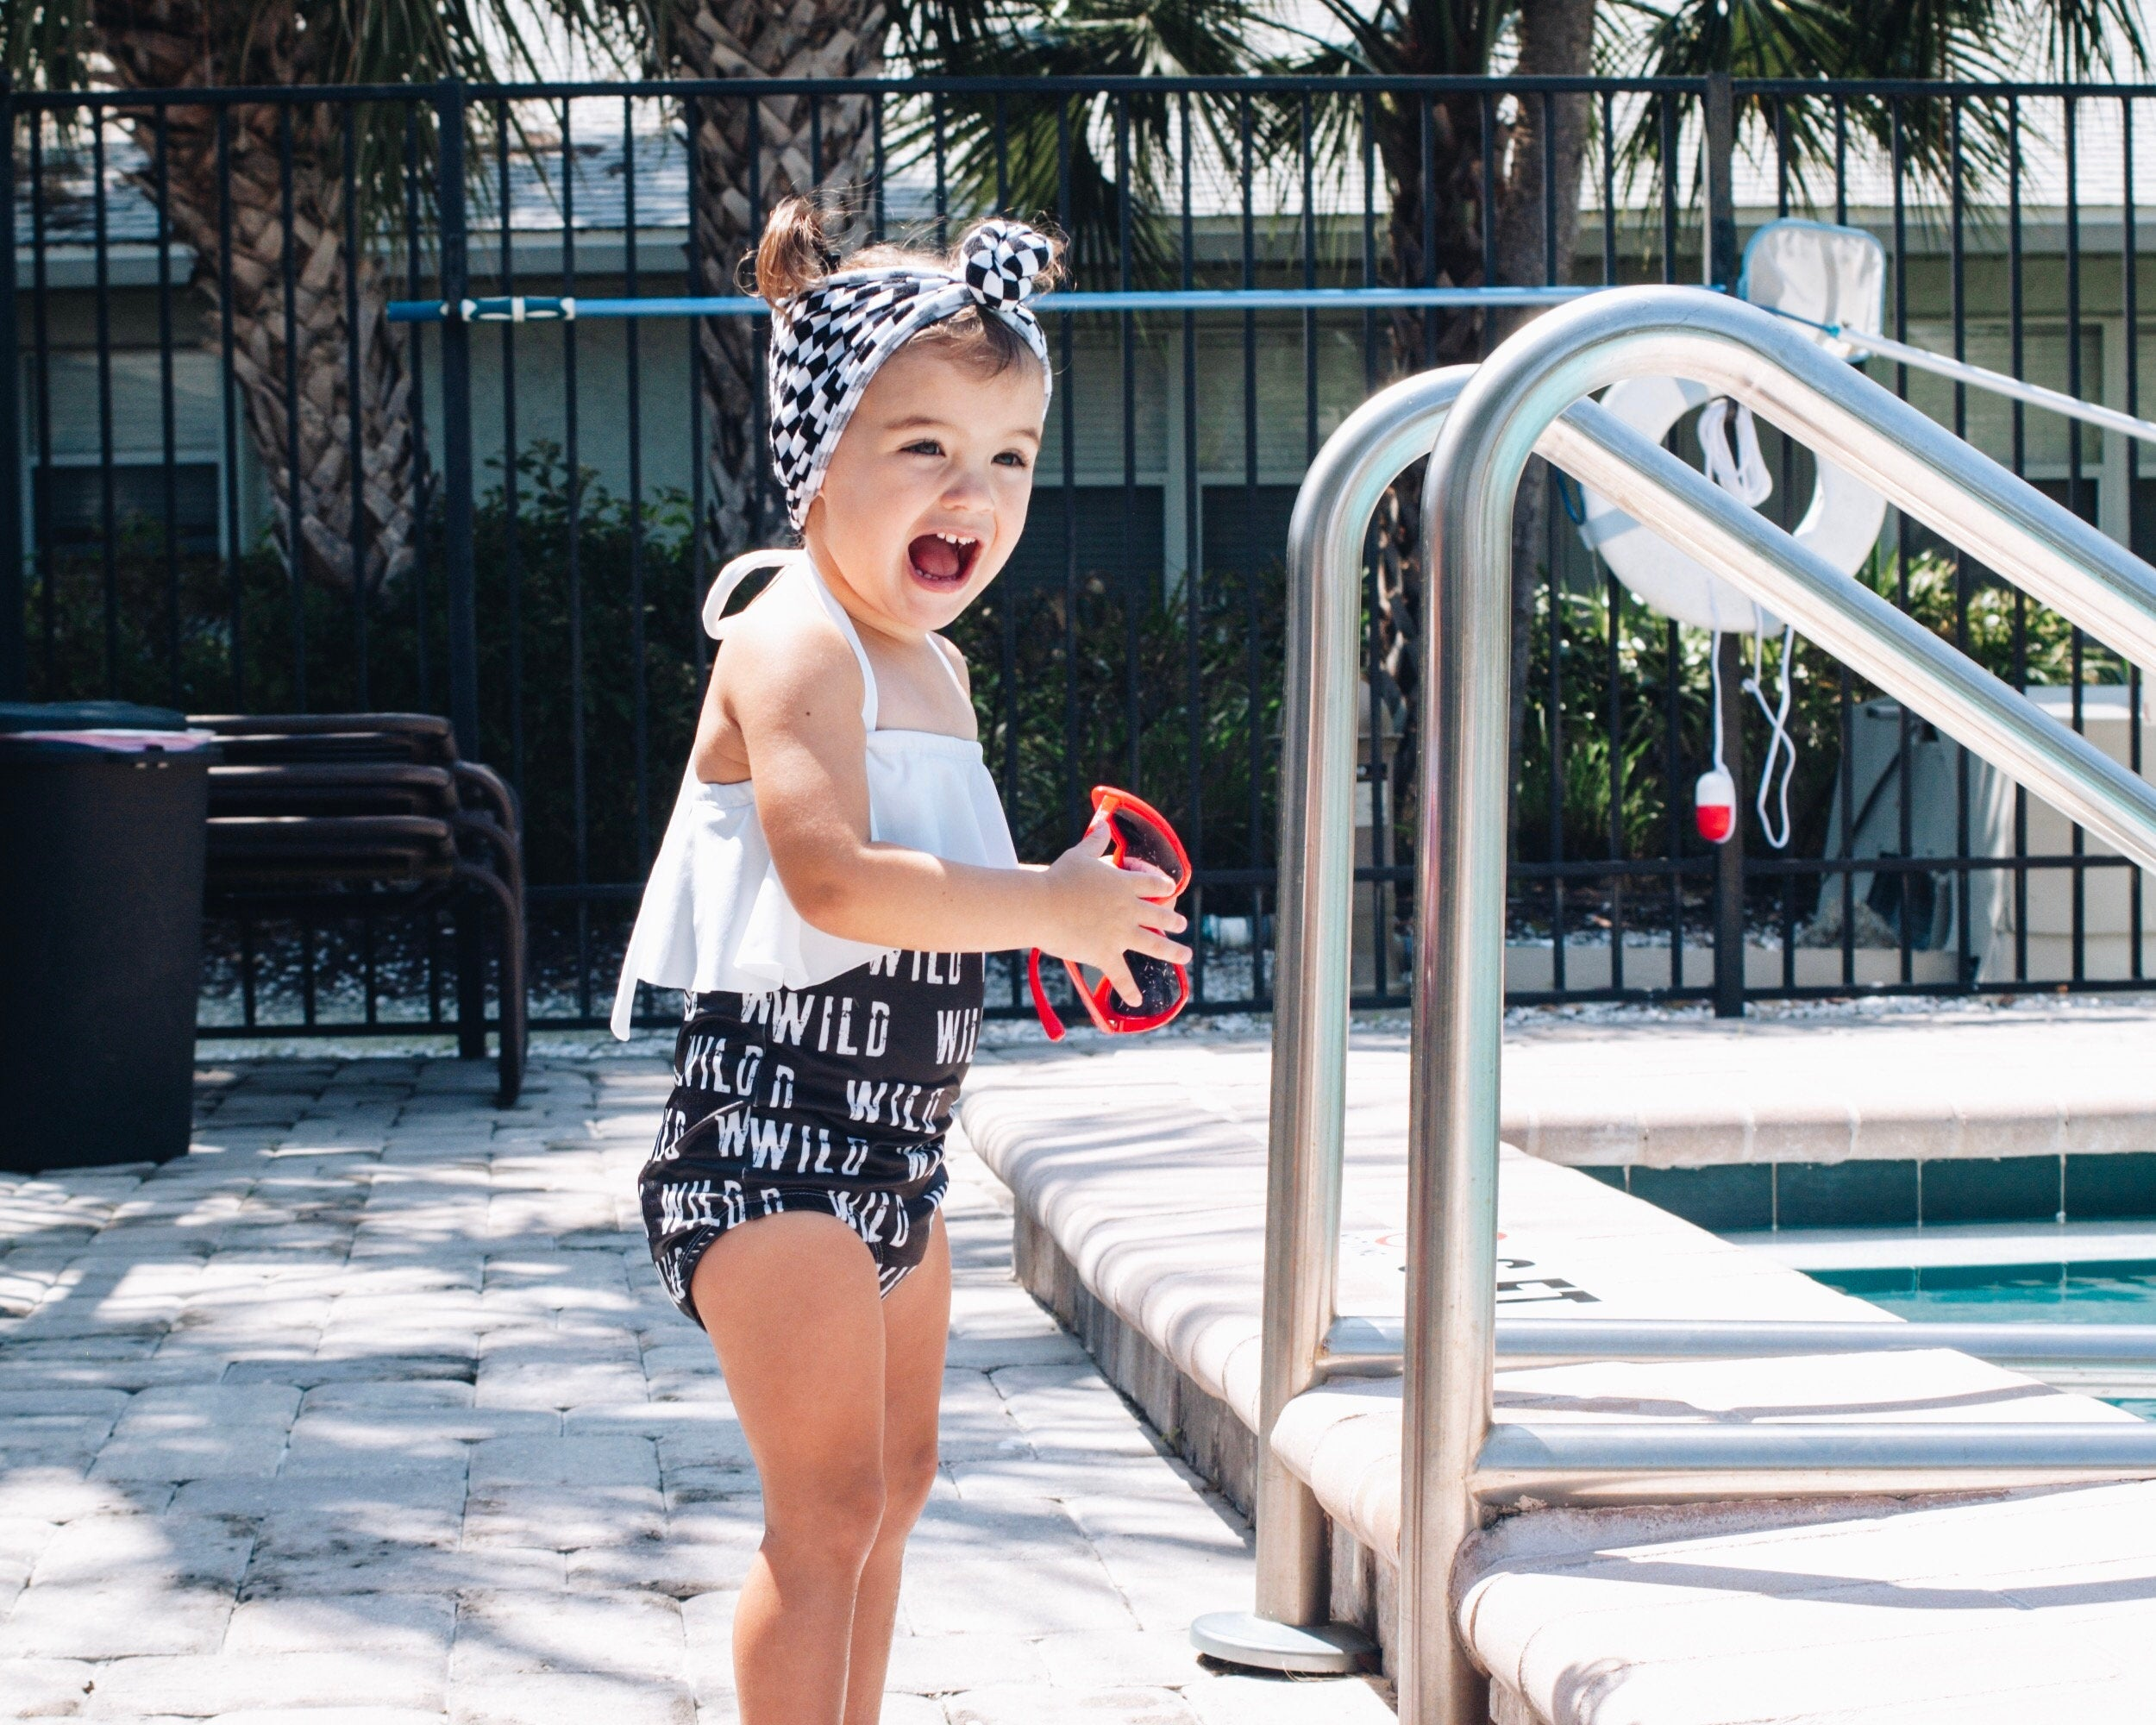 Monochrome Wild Ruffle One-Piece Swimsuit - Kids Baby Toddler Black and White Top Ruffle -  Bathing Suit